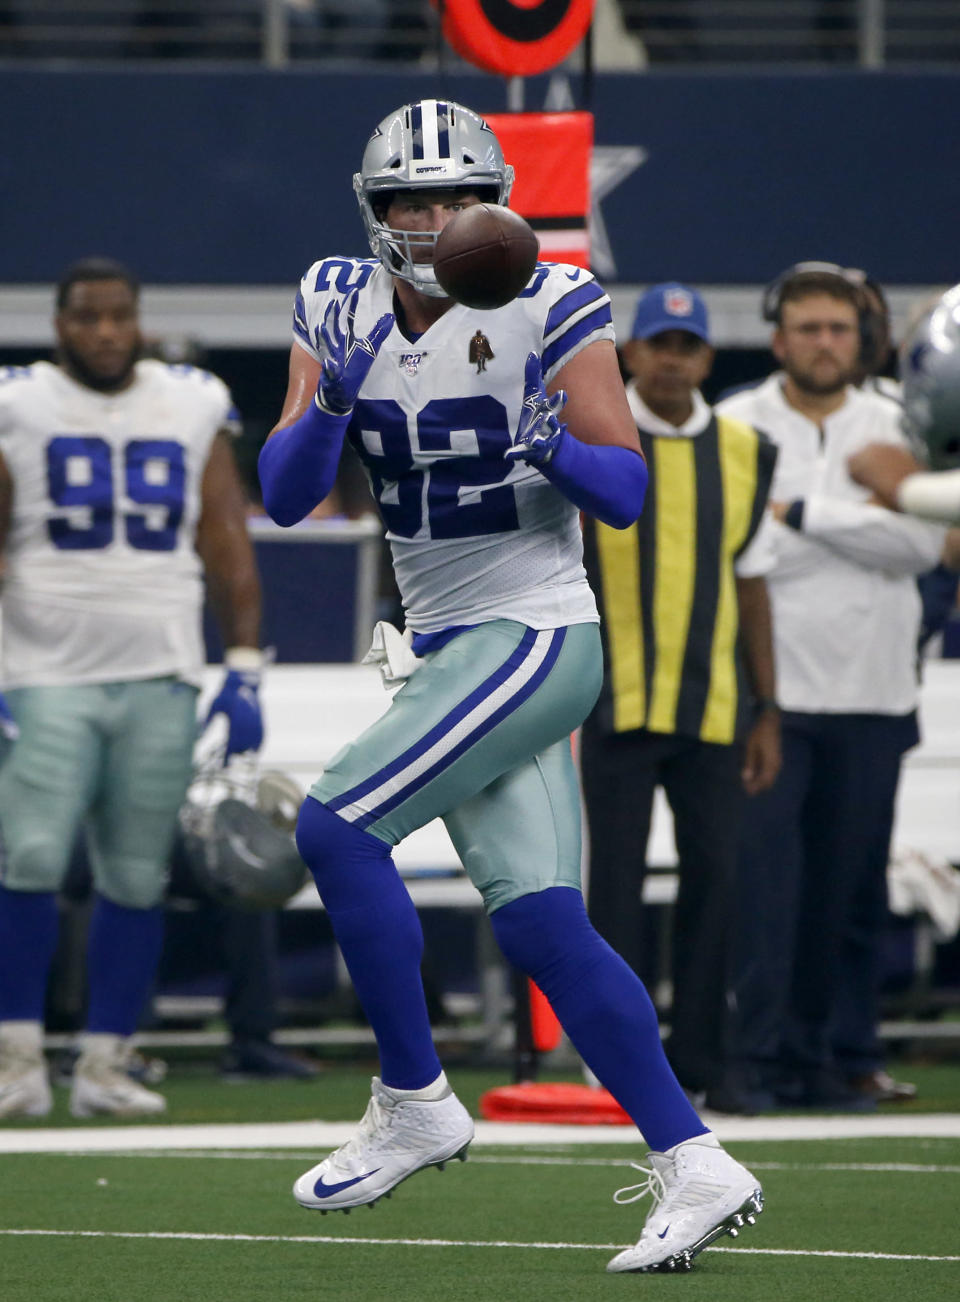 Dallas Cowboys tight end Jason Witten (82) reaches up to make a catch in the first half of a NFL football game against the New York Giants in Arlington, Texas, Sunday, Sept. 8, 2019. (AP Photo/Michael Ainsworth)